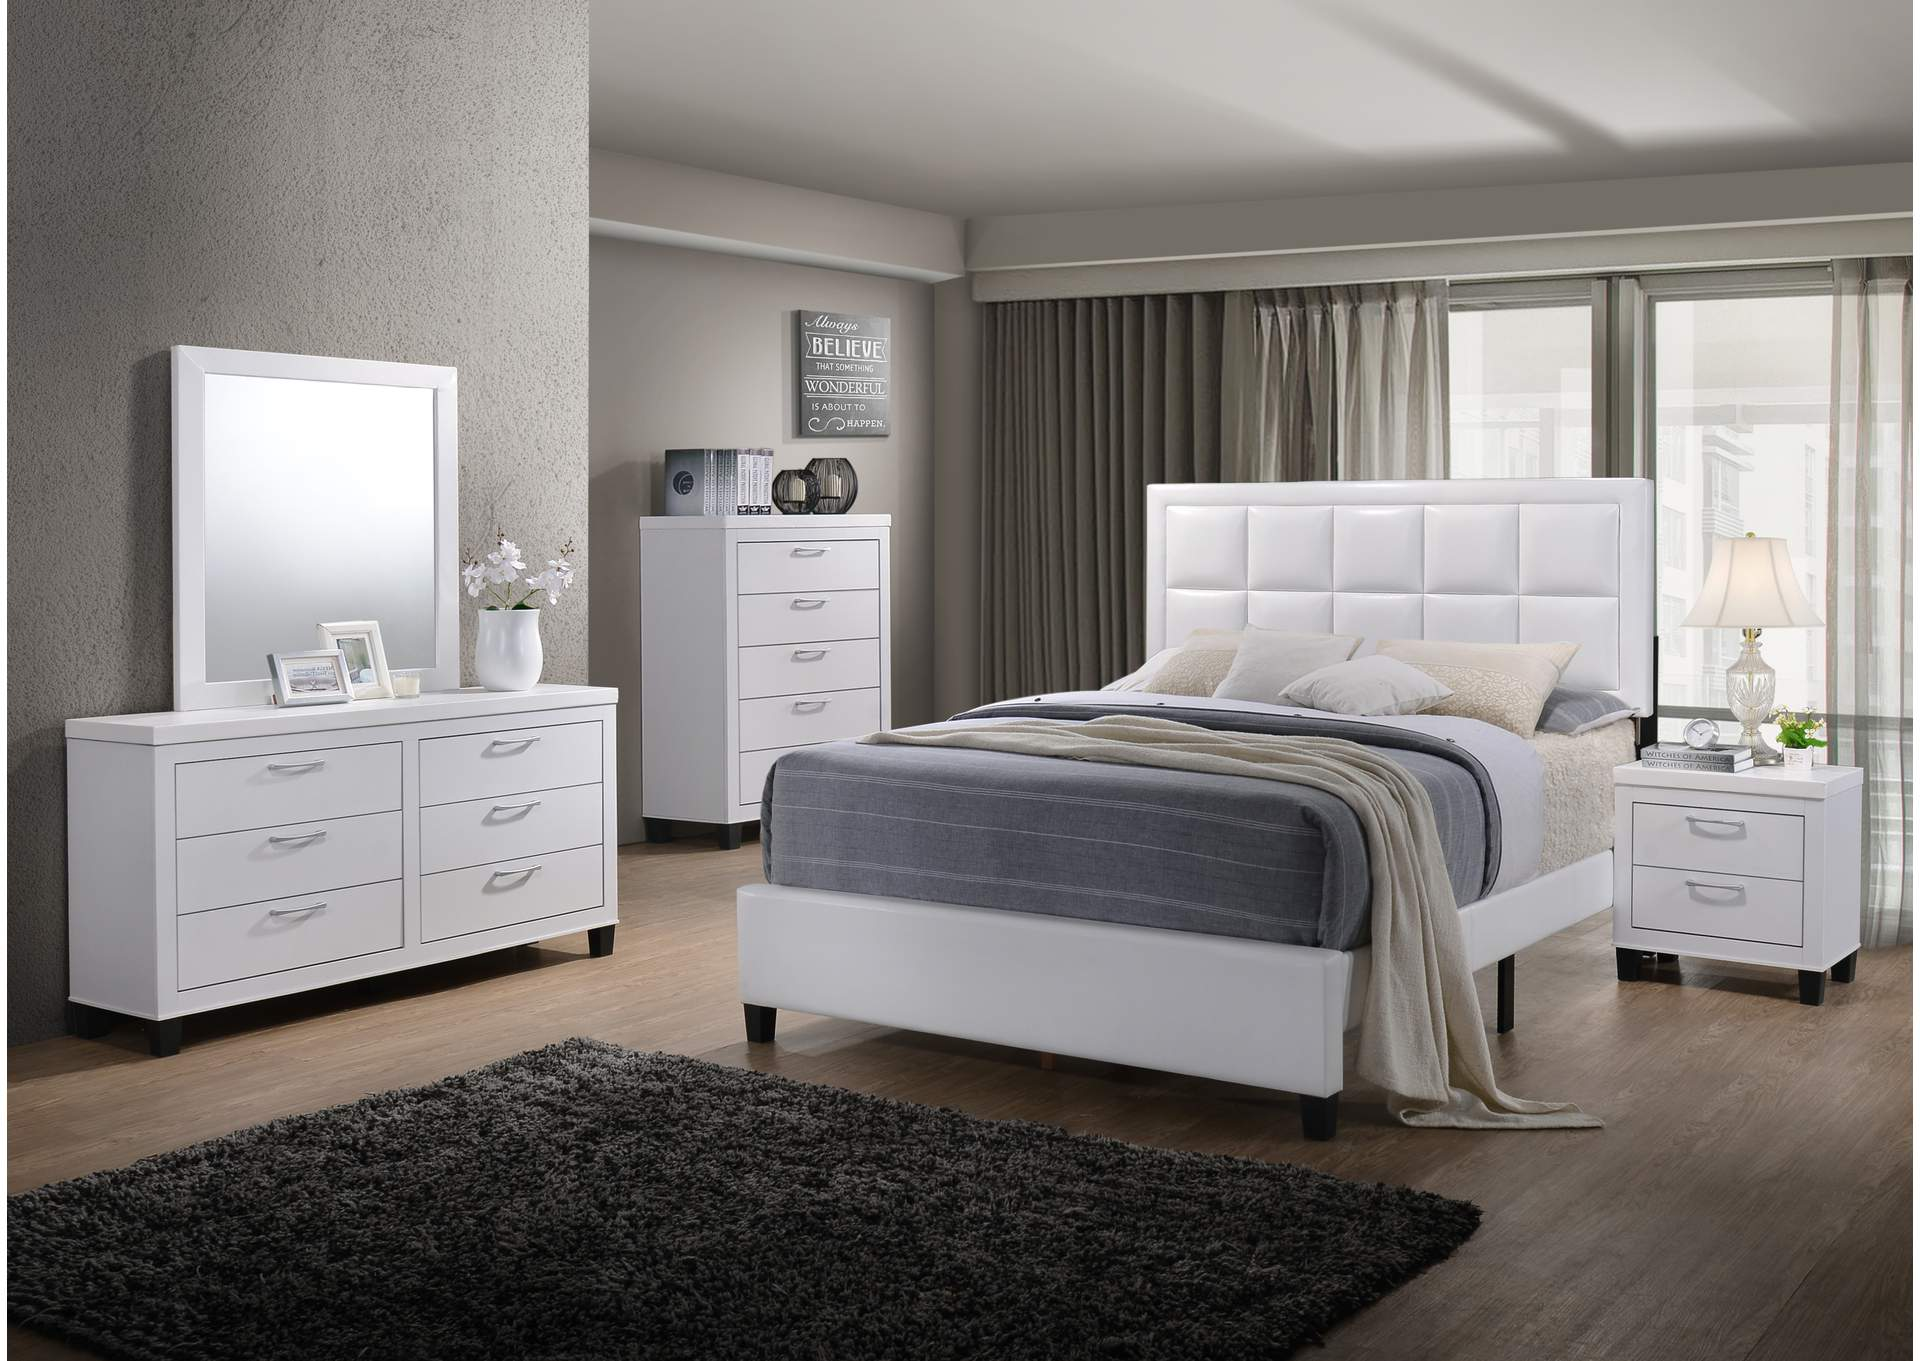 Culverbach White Panel Queen 5 Piece Bedroom Set W/ Nightstand, Chest, Dresser & Mirror,Global Trading